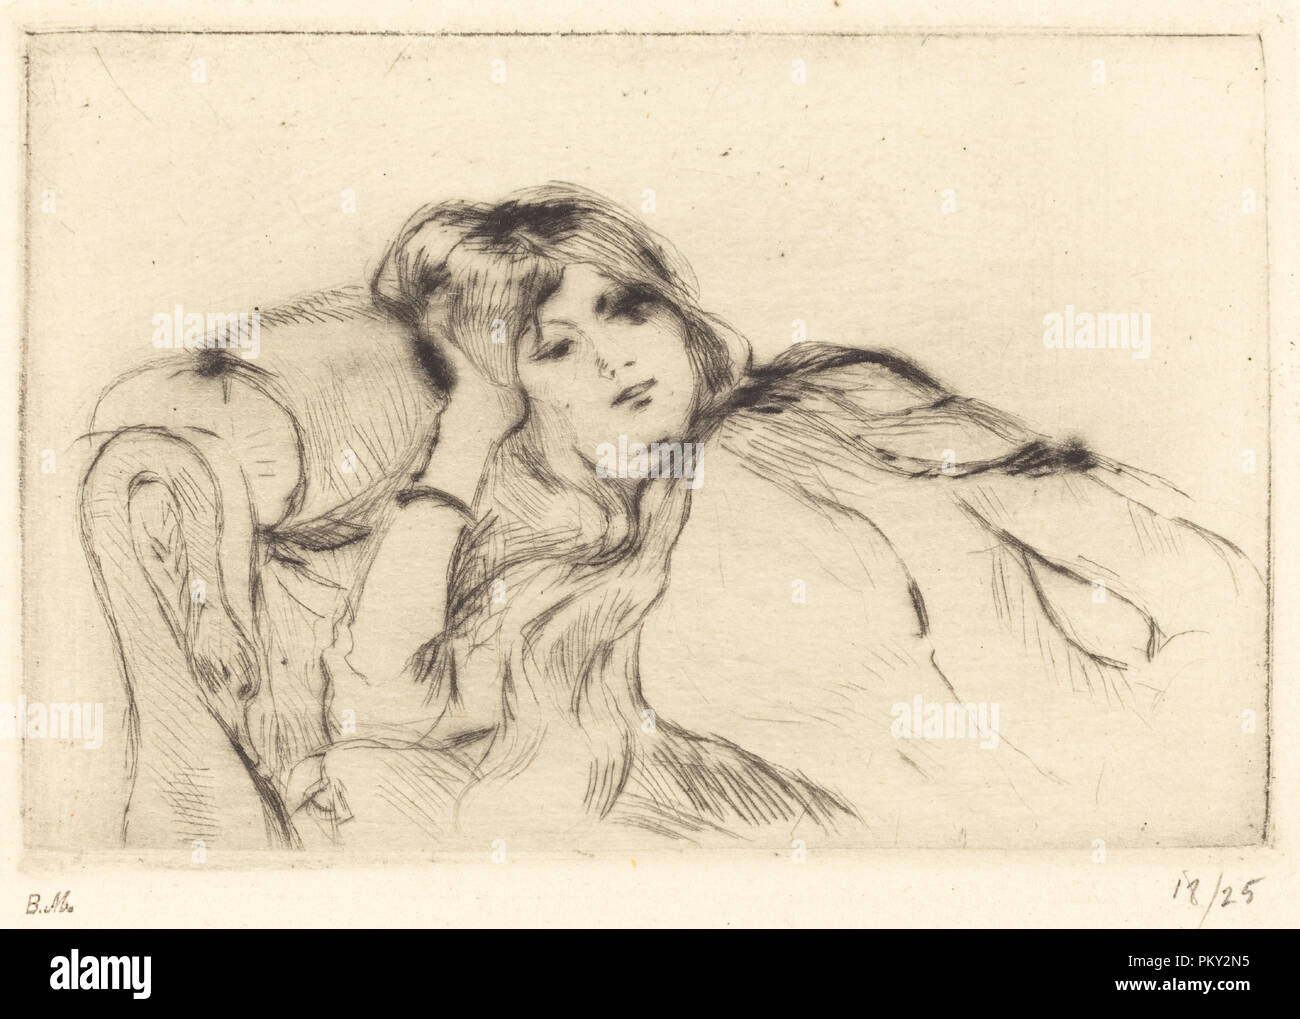 Rest. Dated: 1888/1890. Medium: drypoint [reprinted by Ambroise Vollard]. Museum: National Gallery of Art, Washington DC. Author: Berthe Morisot. - Stock Image